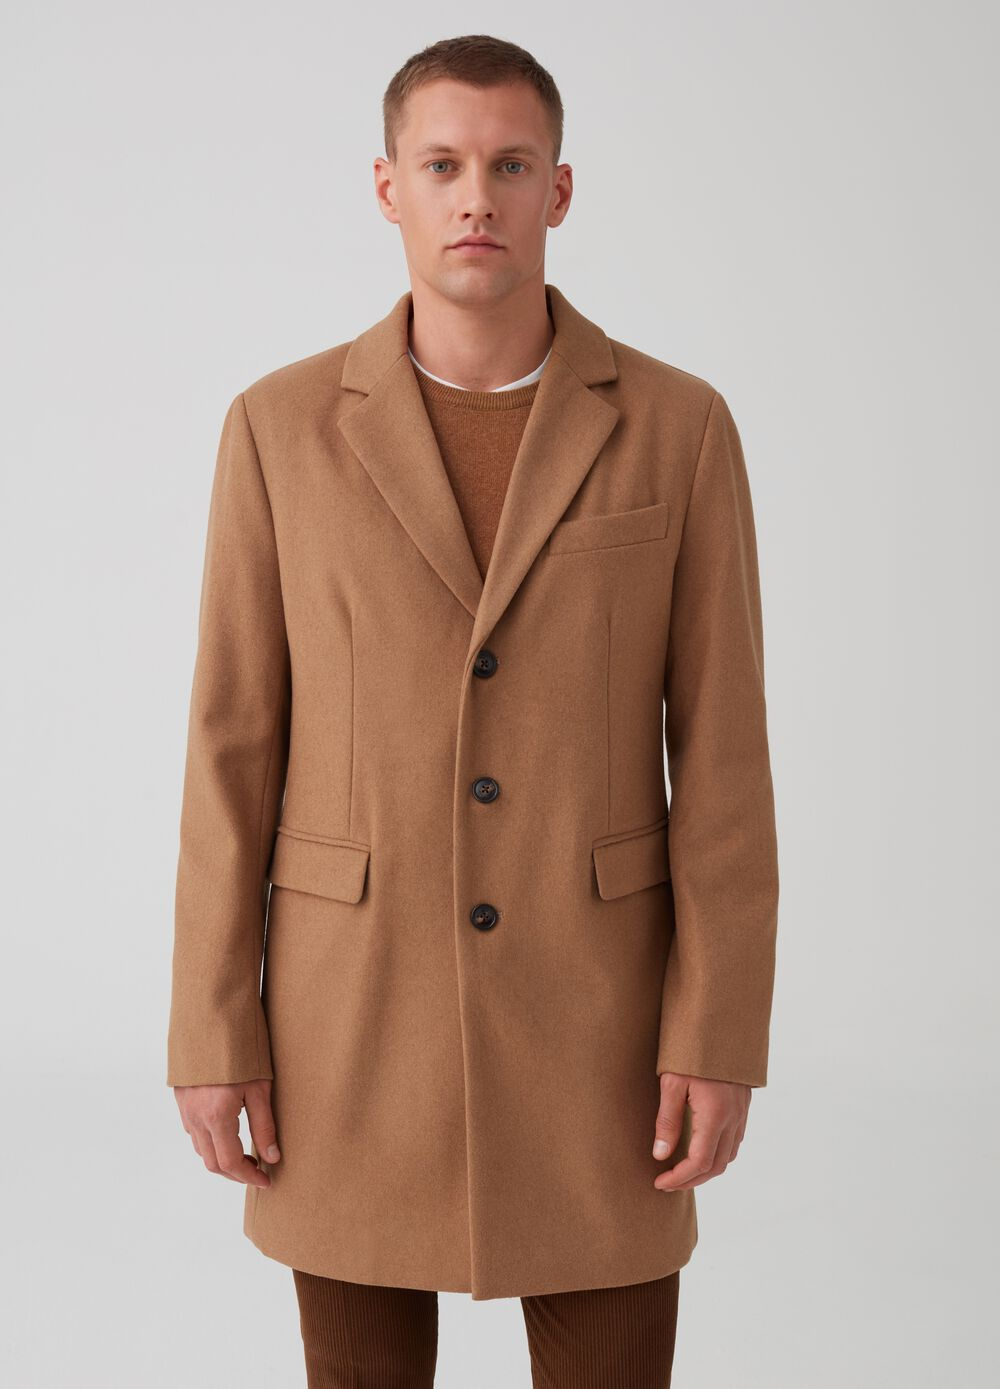 Three-button coat with pockets and flap